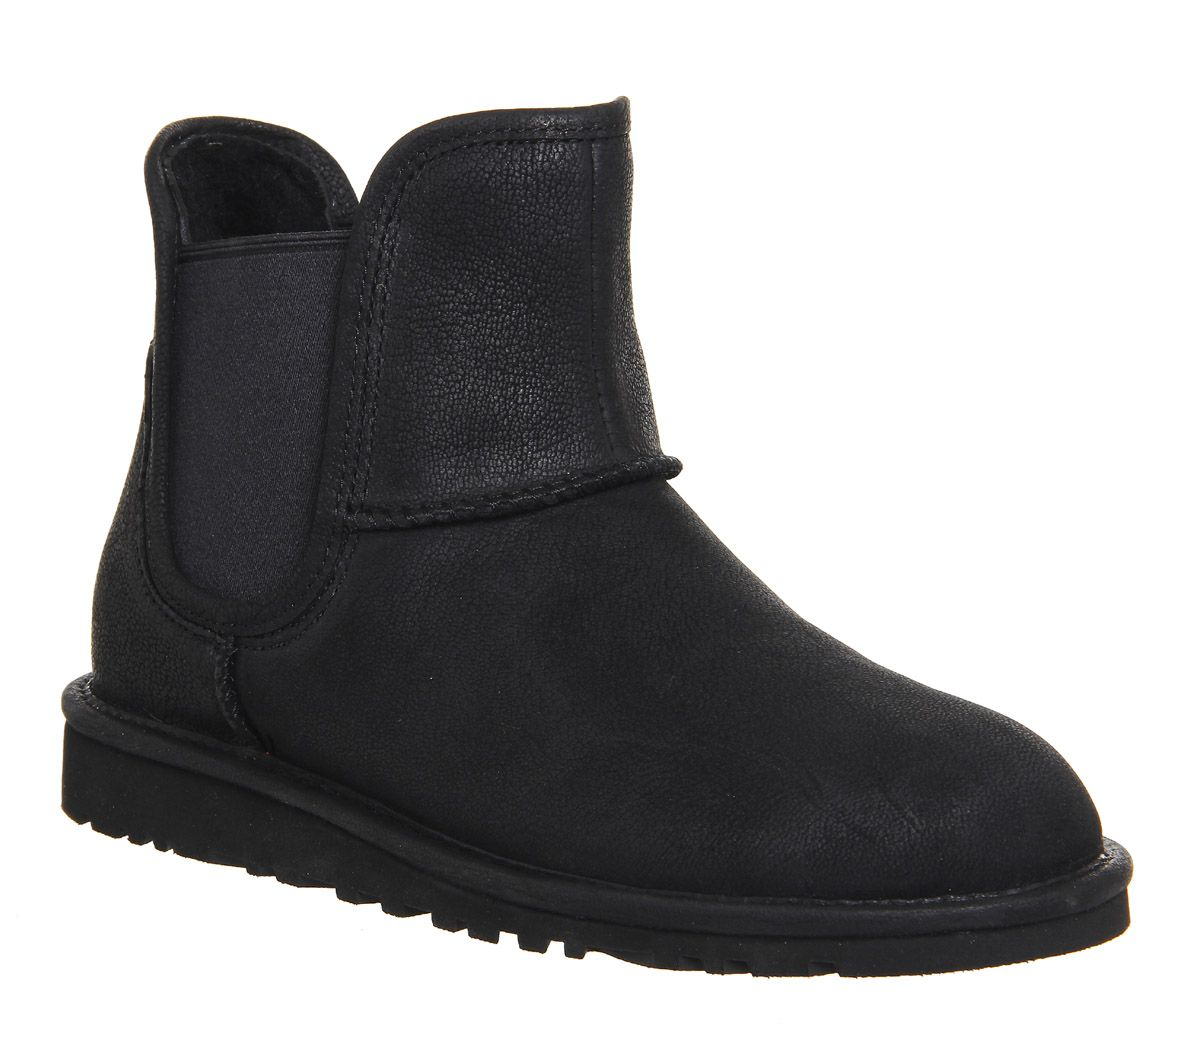 Black Ugg Australia Petra Short Boots From Office Co Uk